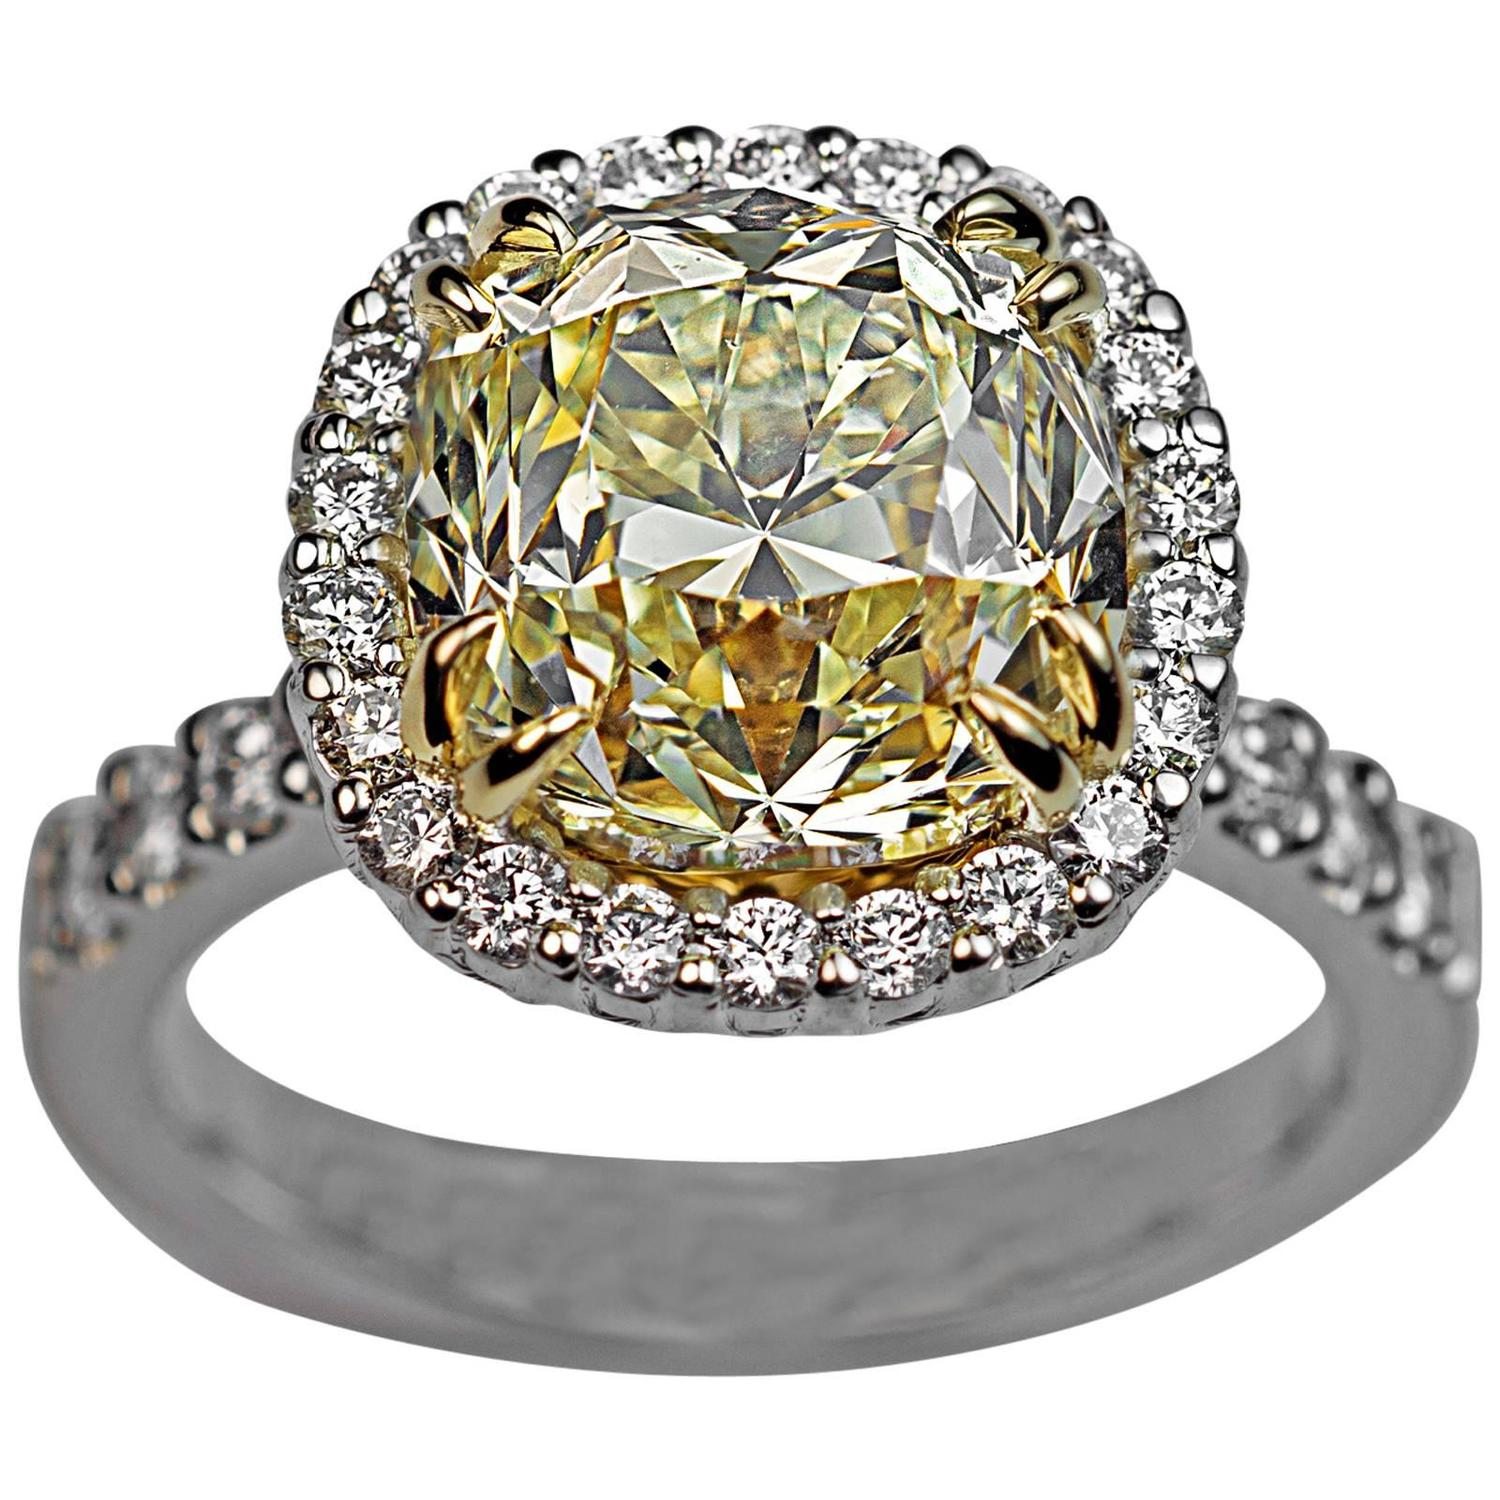 Vintage and Antique Engagement Rings at 1stdibs